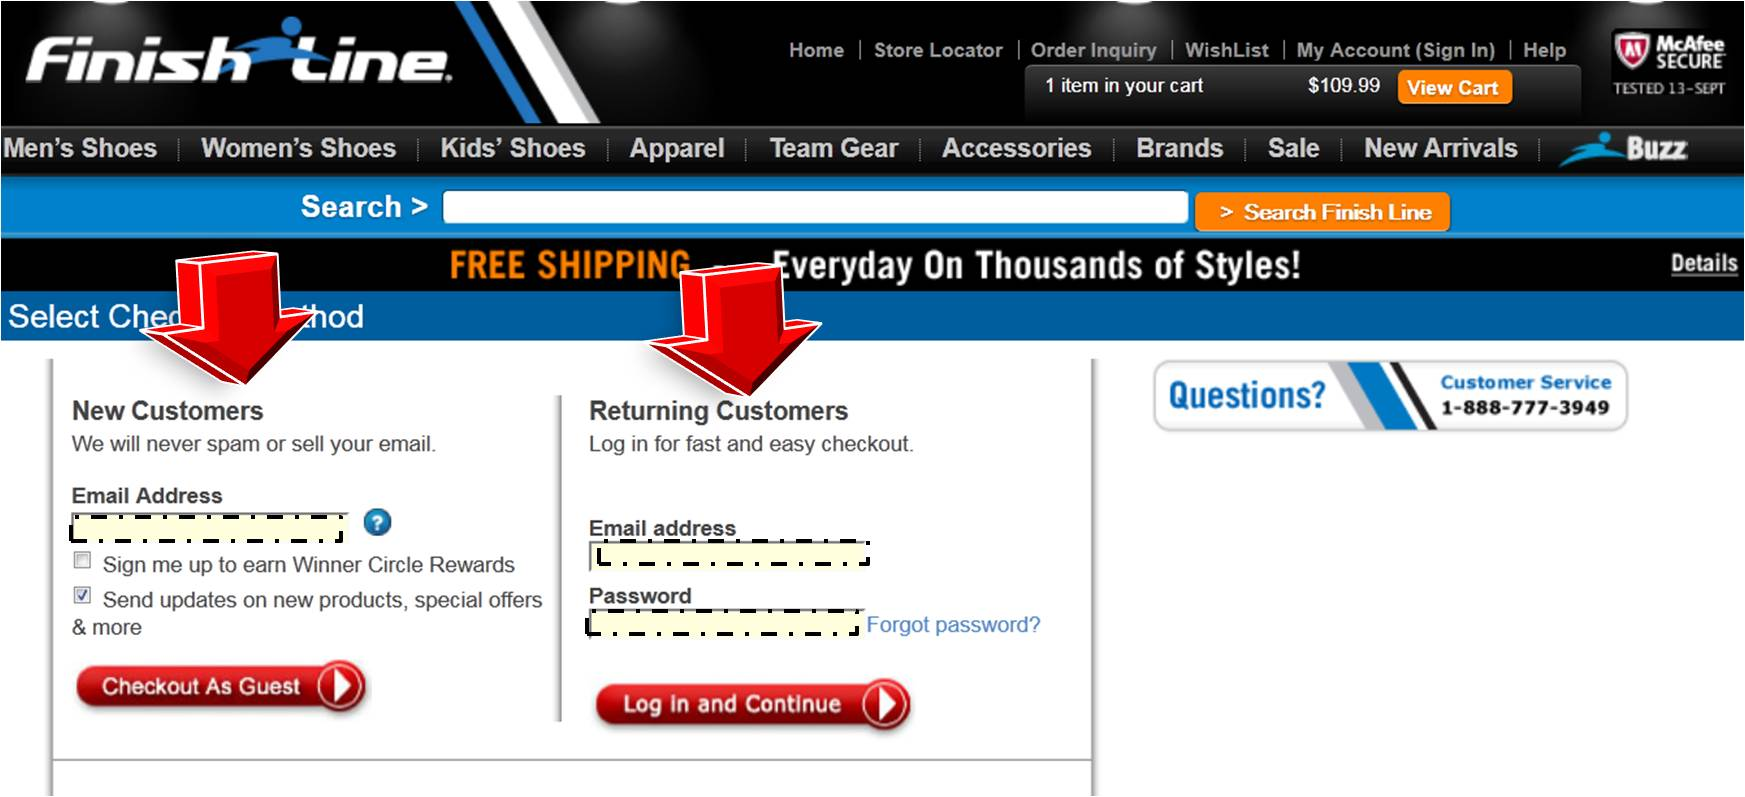 Finishline coupon codes